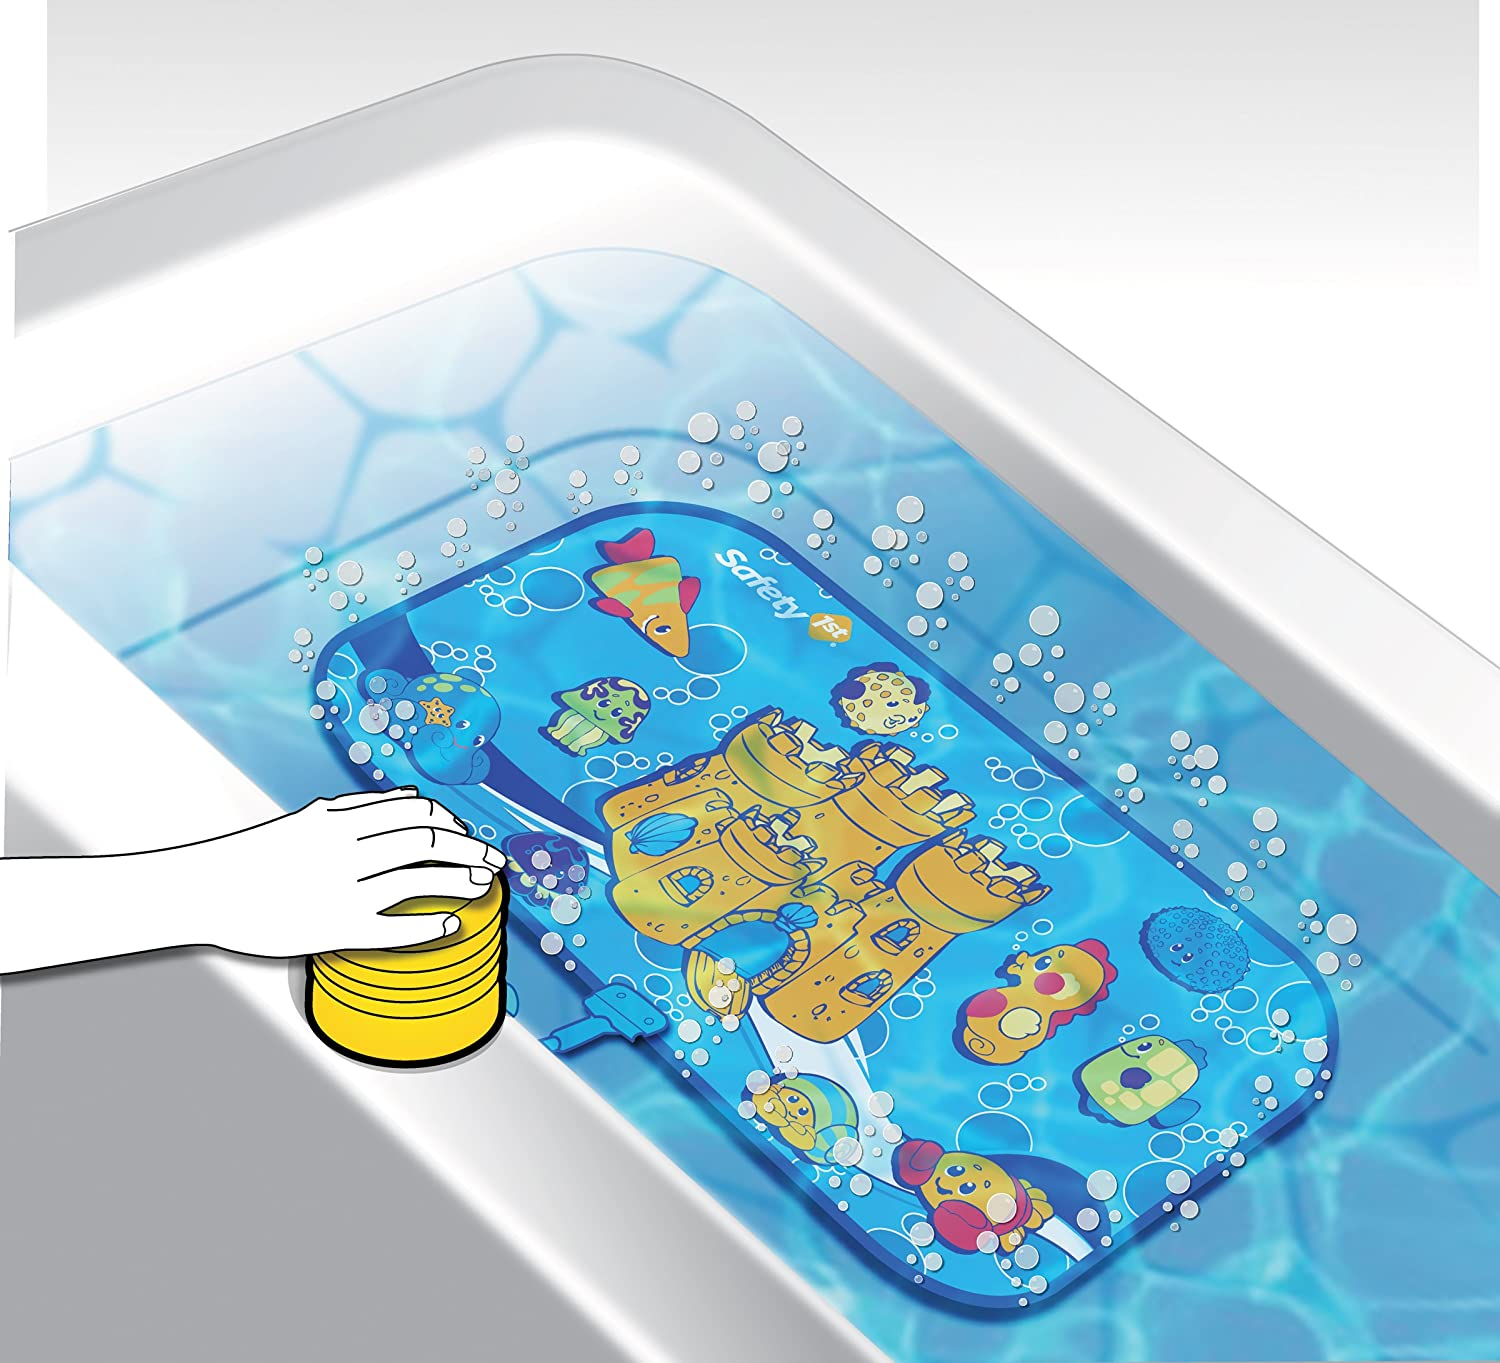 Amazon.com : Safety 1st Bubble Time Bath Mat : Baby Care Products : Baby